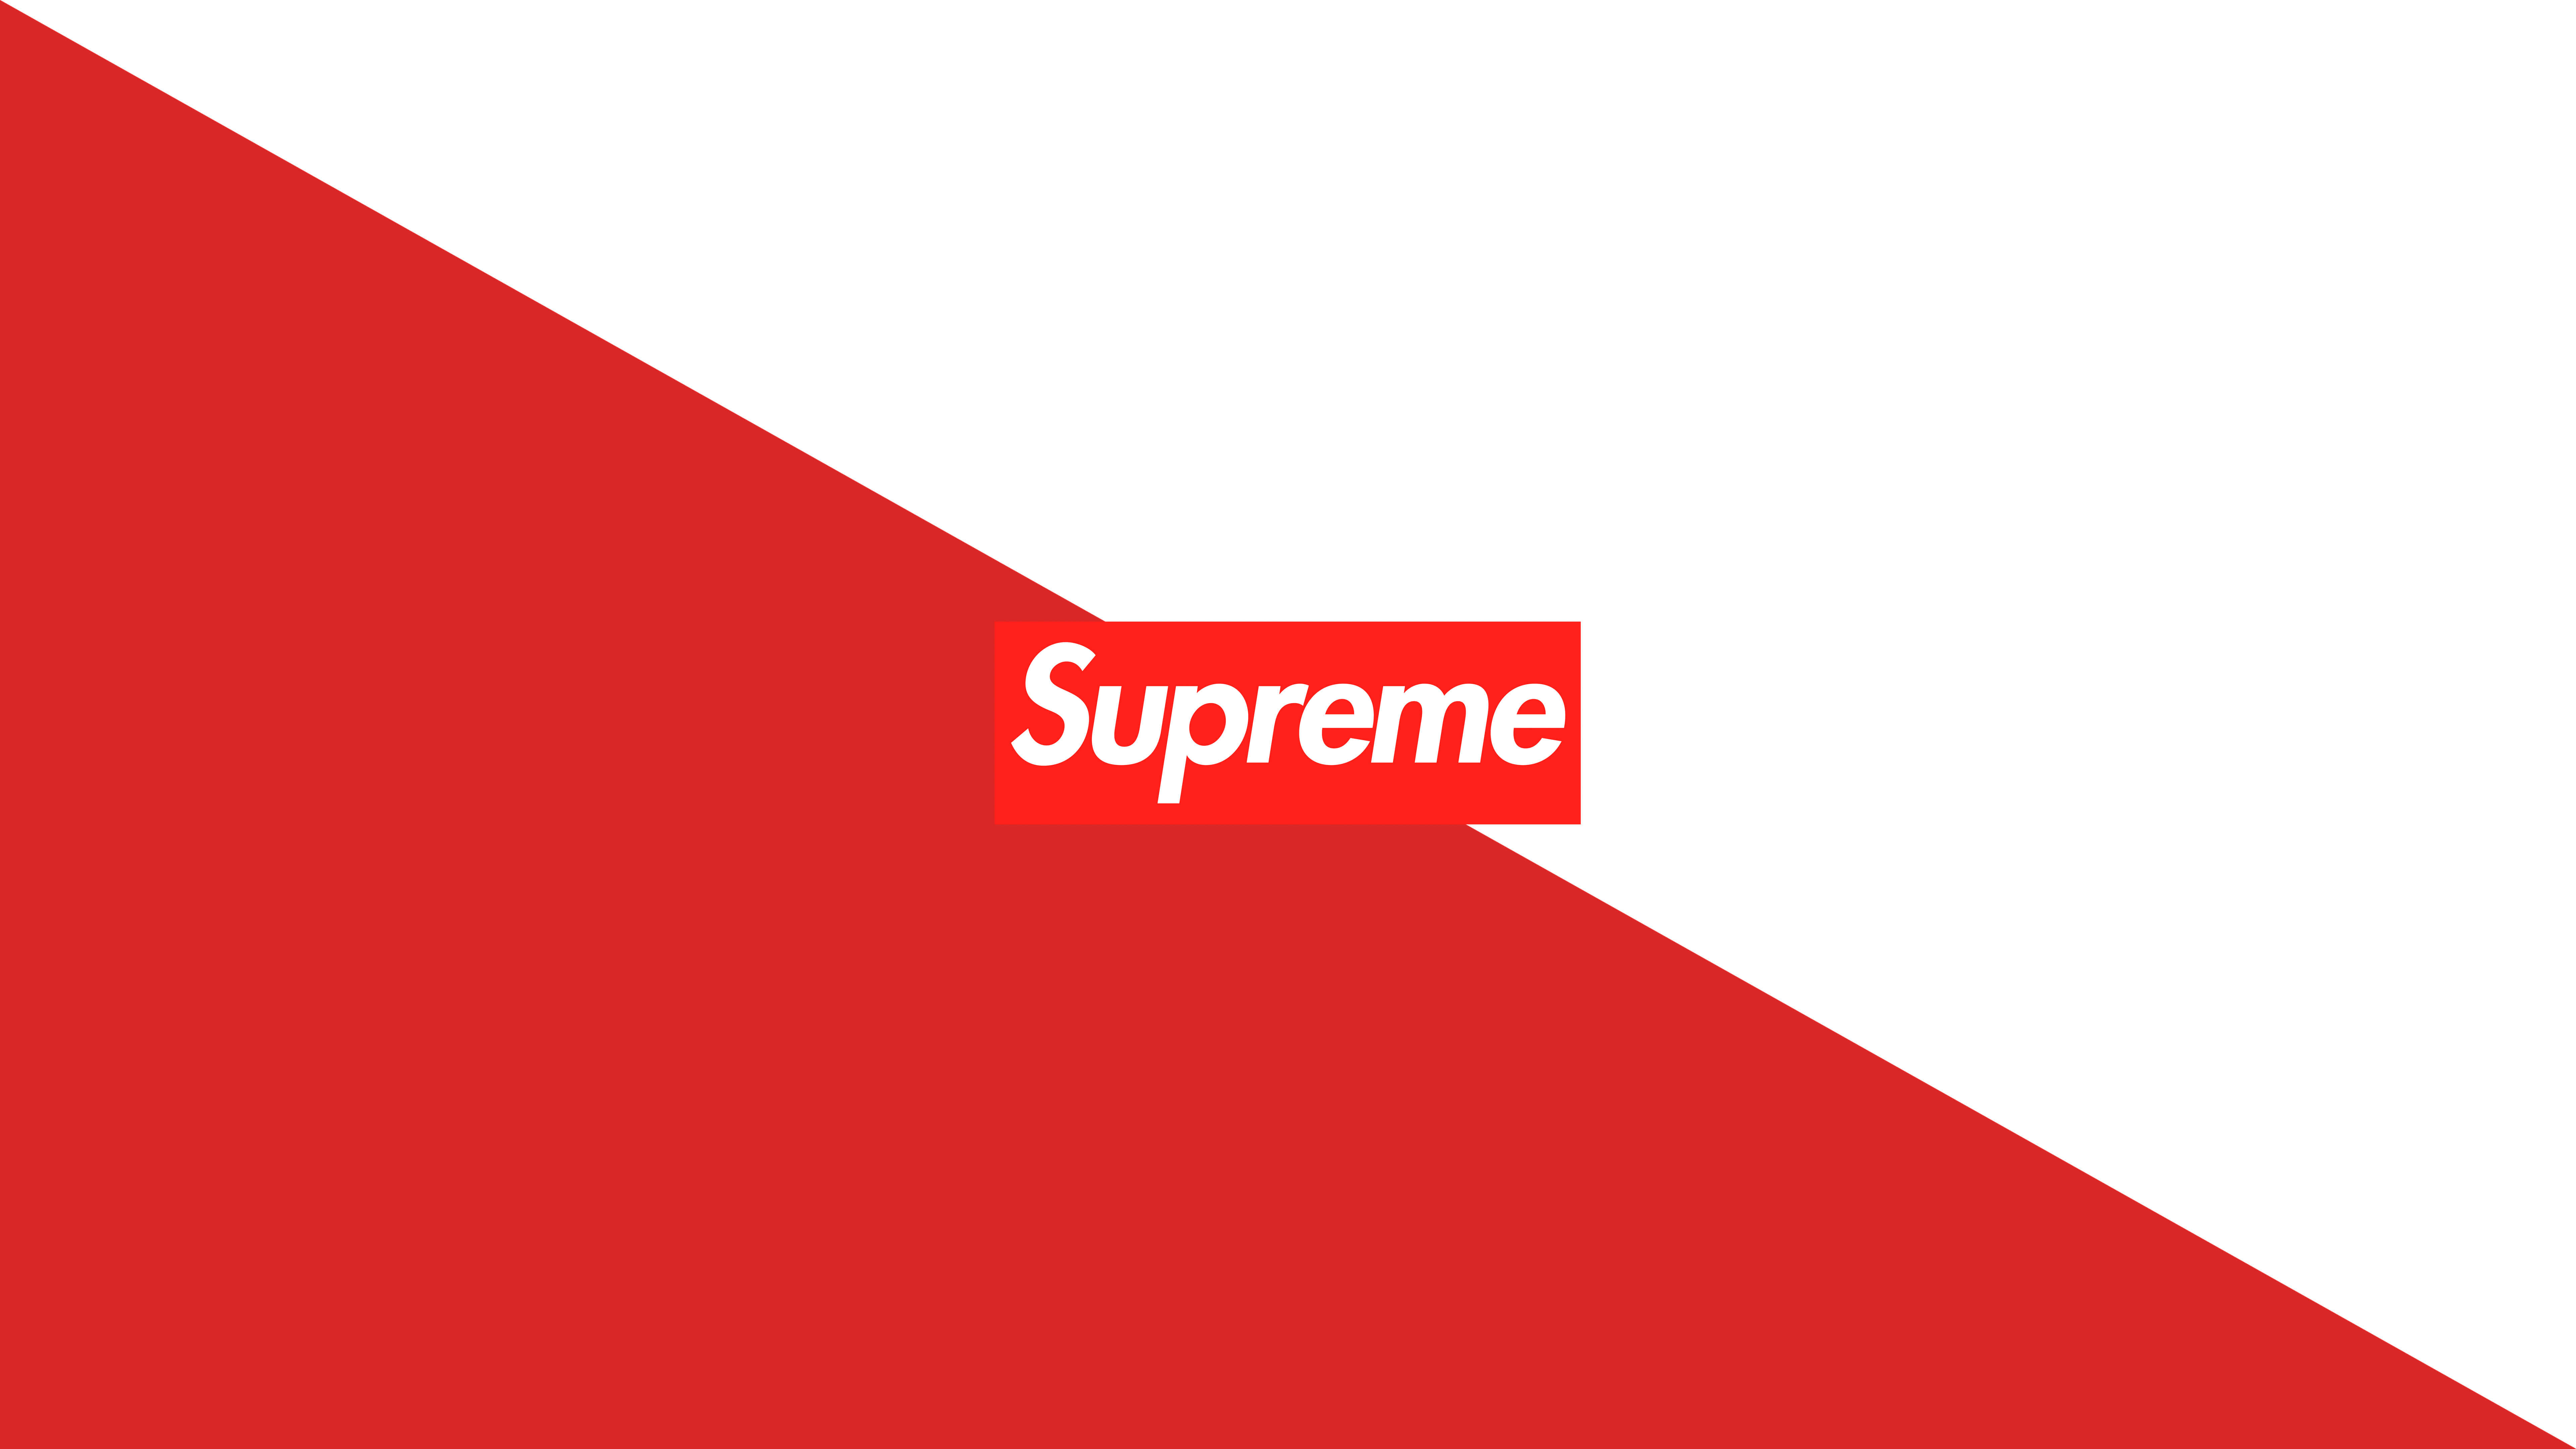 Simple Supreme 8K Wallpaper